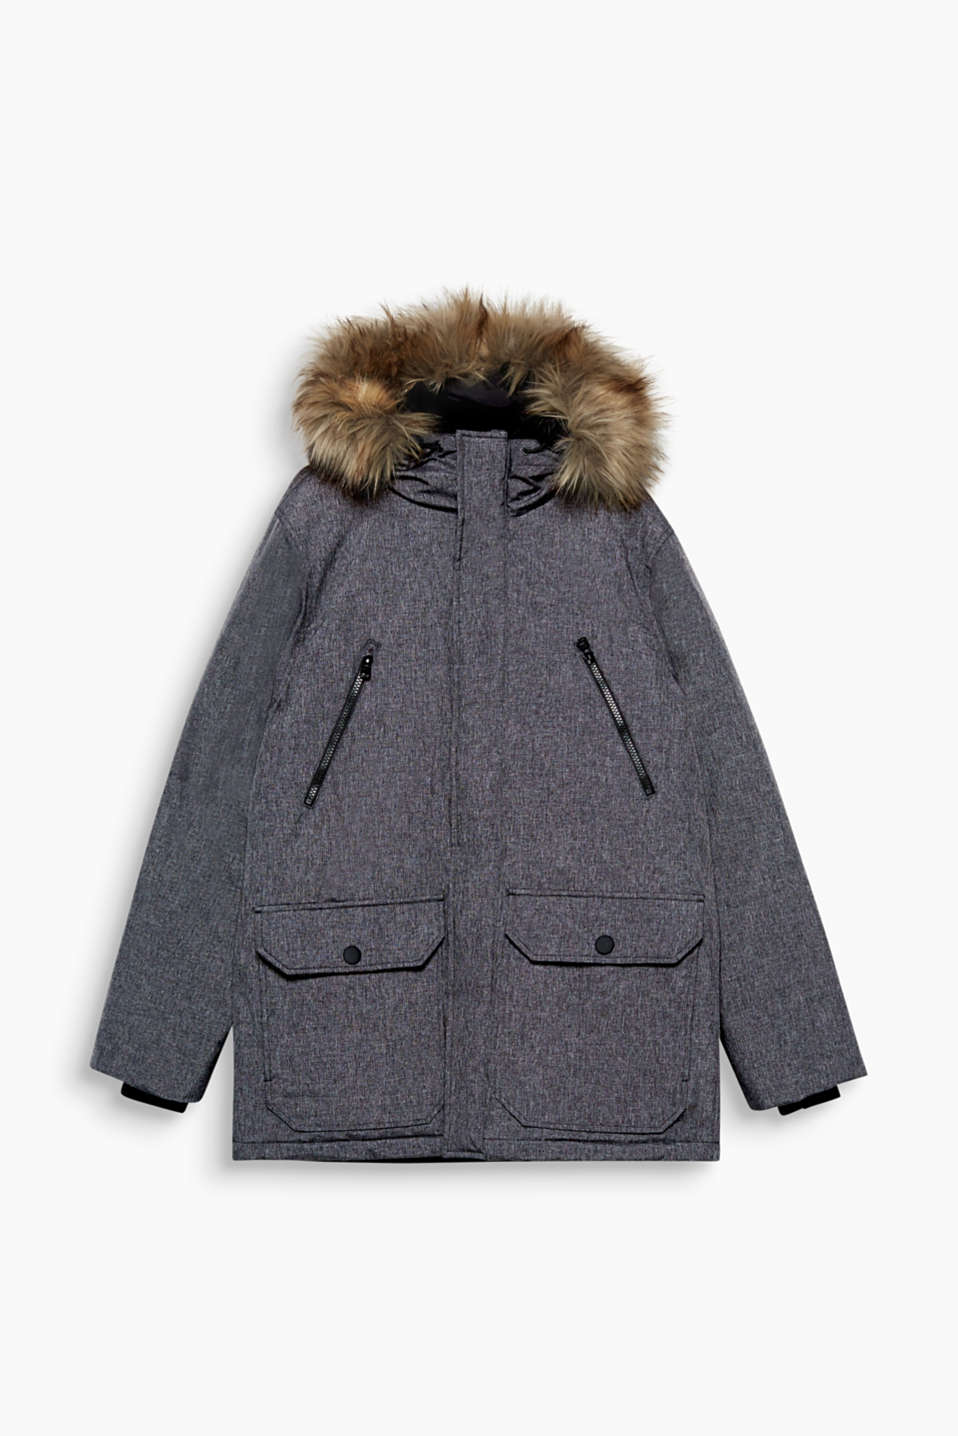 Look cool, stay warm! This weatherproof jacket is padded and features a hood trimmed with fake fur.